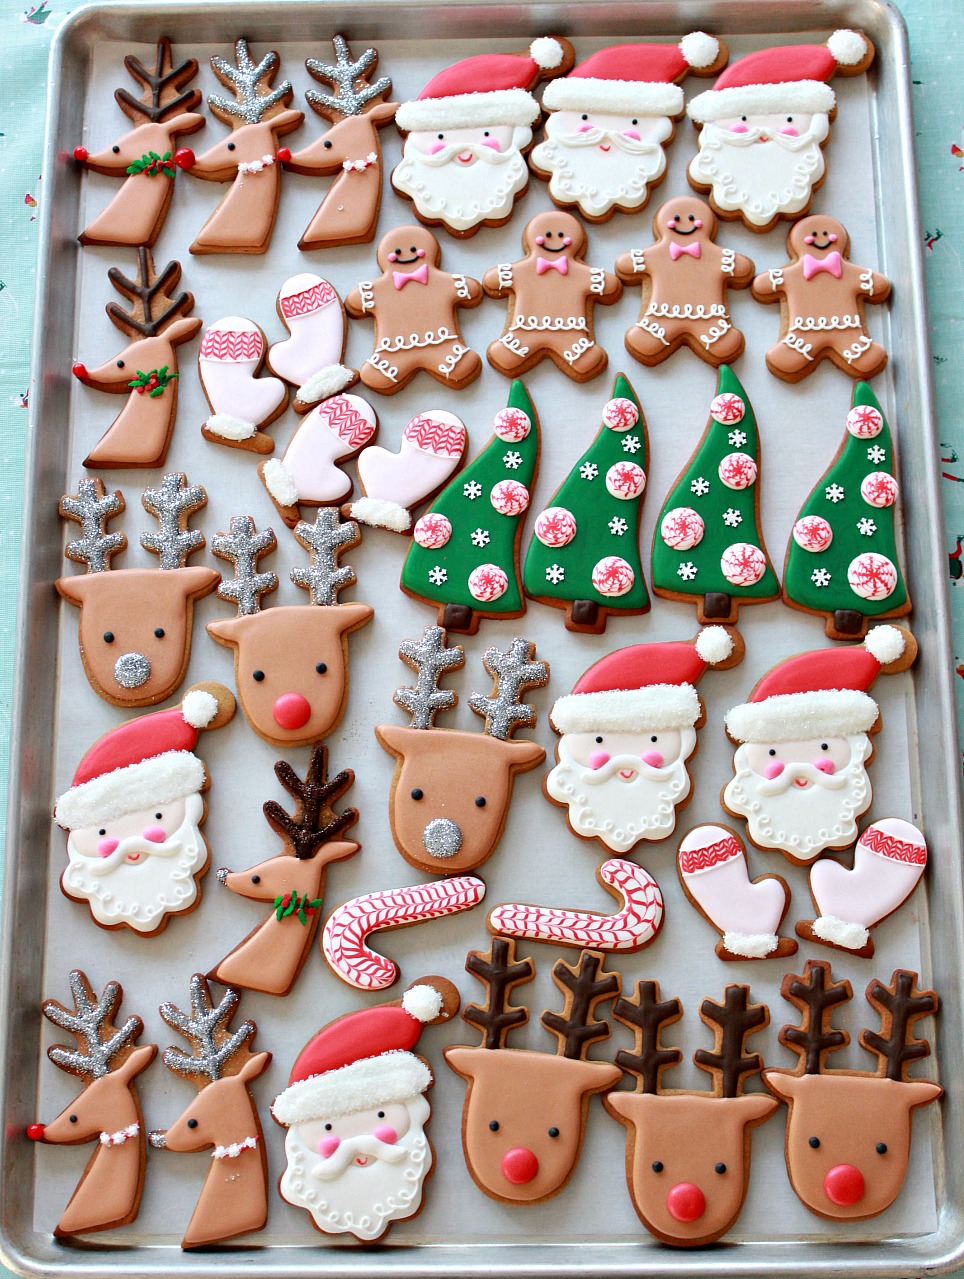 (Video) How to Decorate Christmas Cookies - Simple